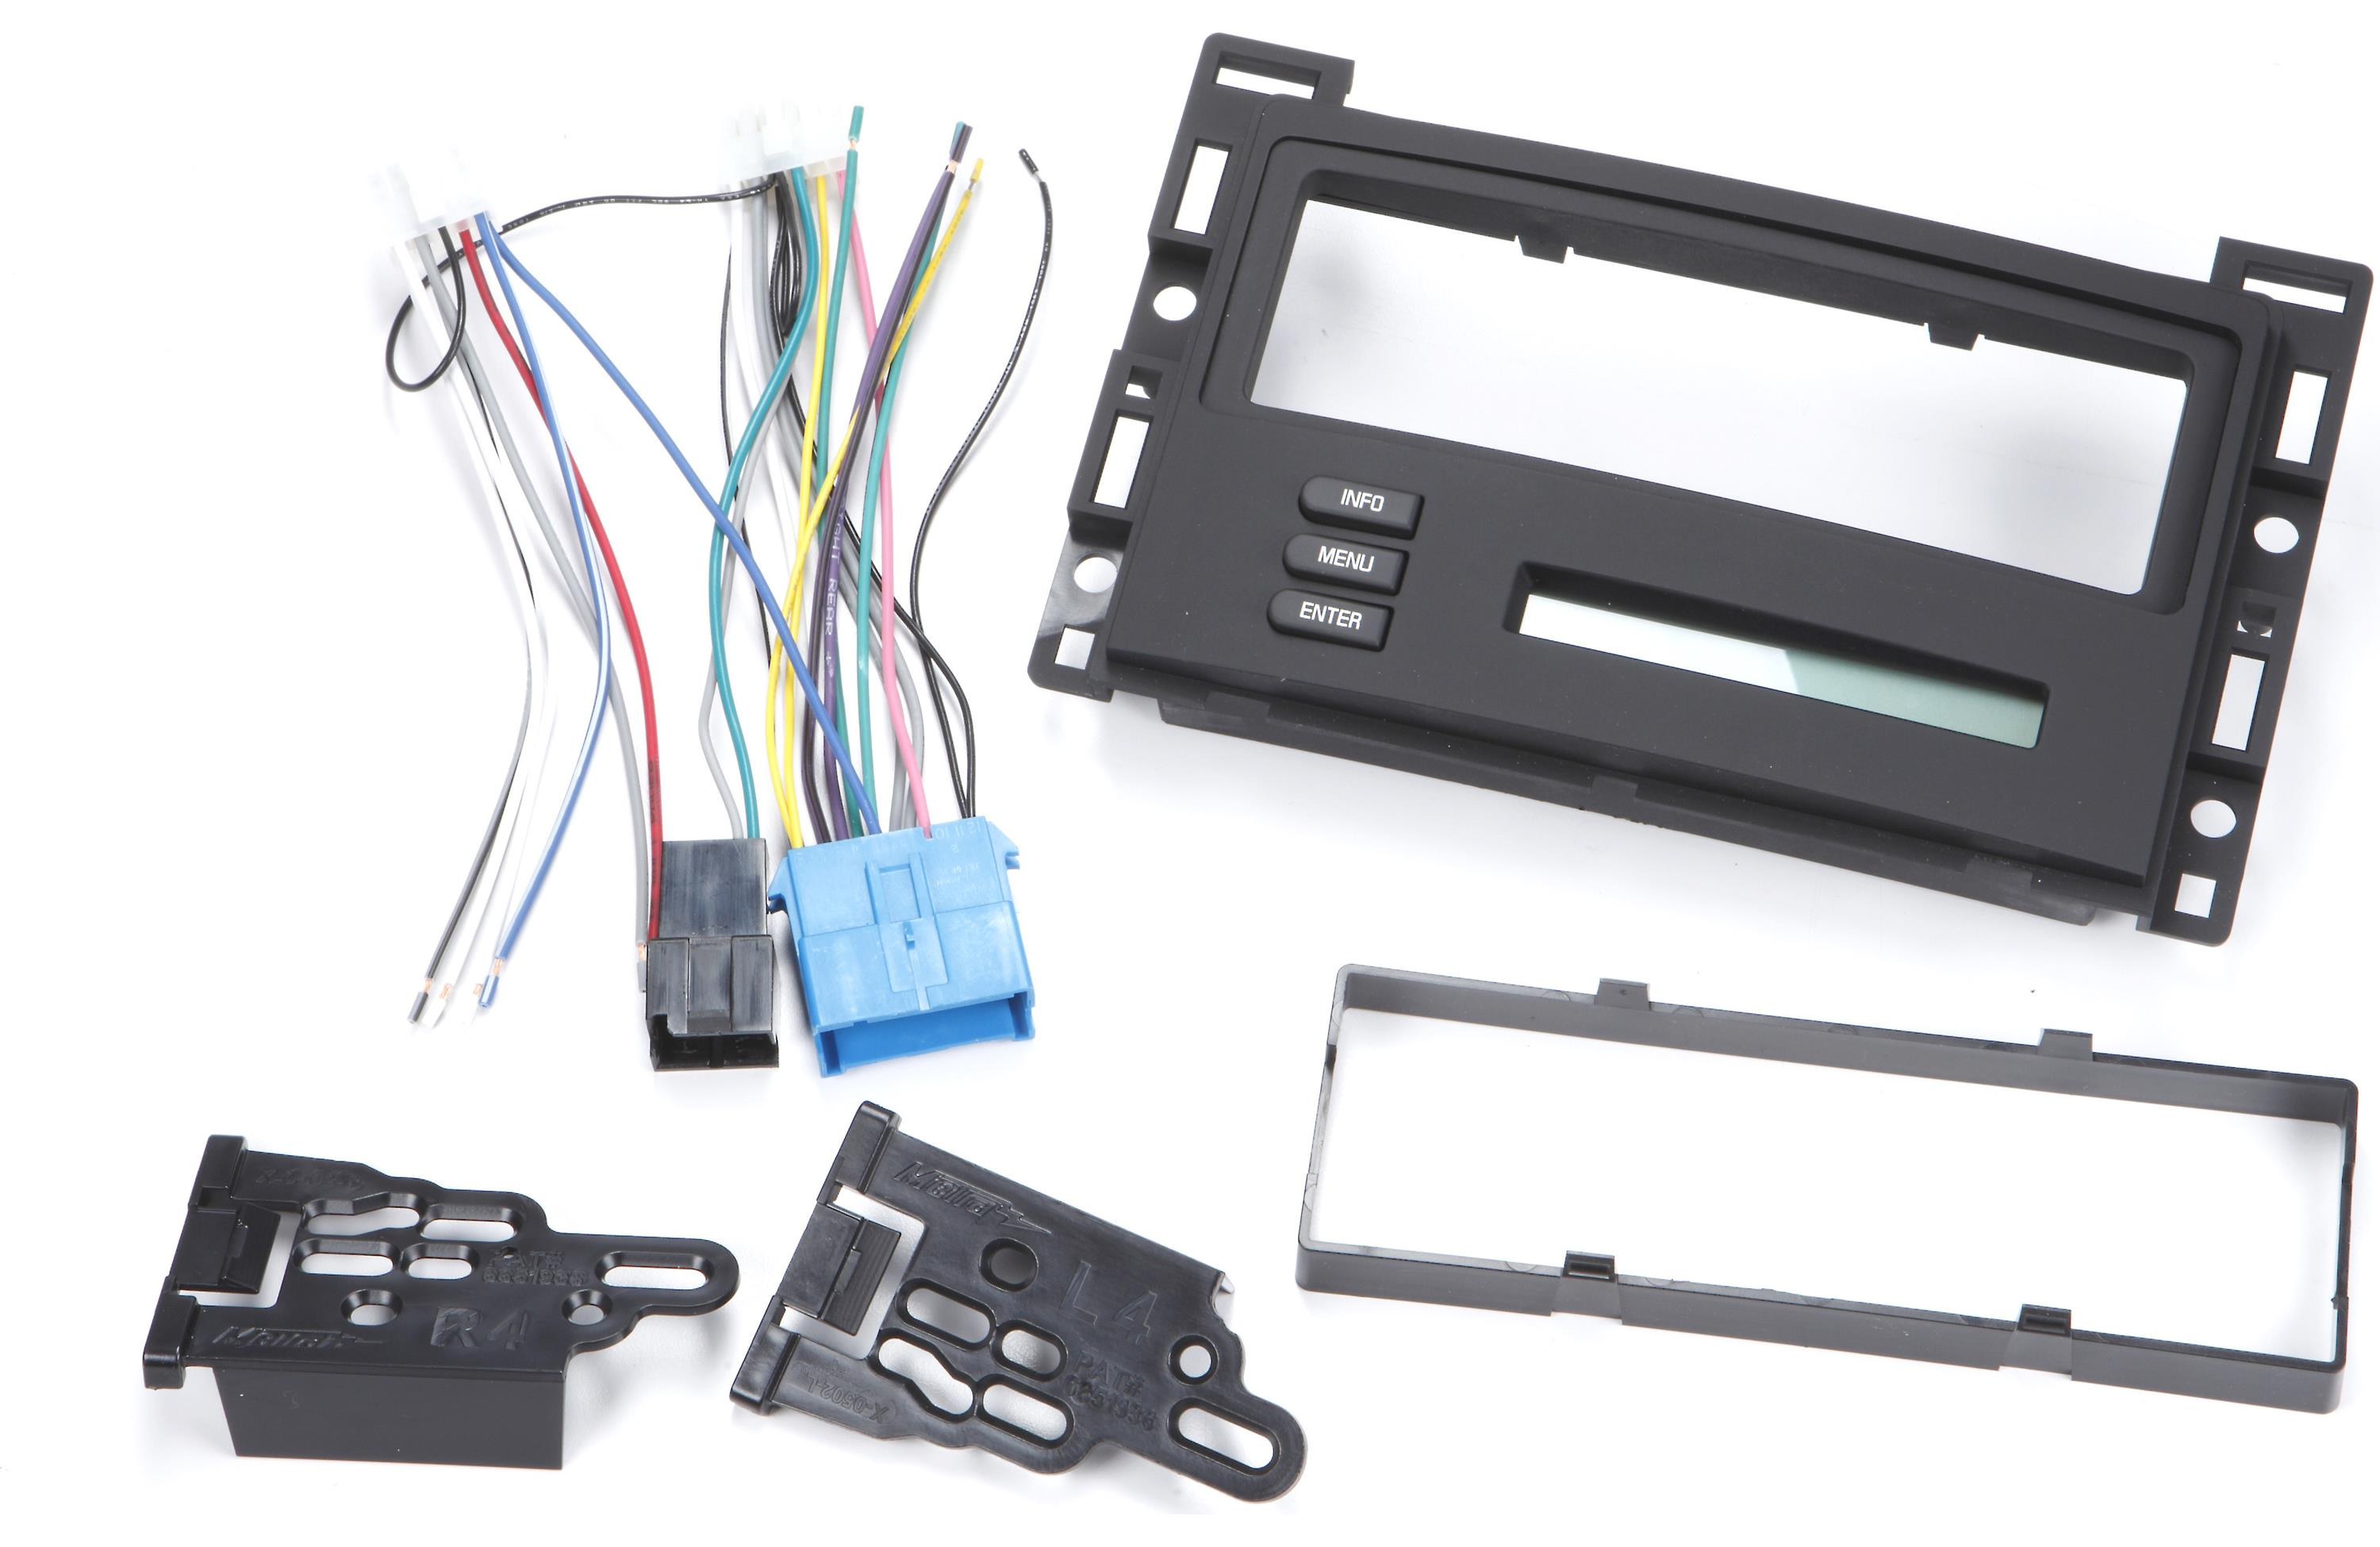 Metra 95 3303b Double Din Stereo Dash Kit For Chevy Malibu Cobalt Pontiac G6 Ebay